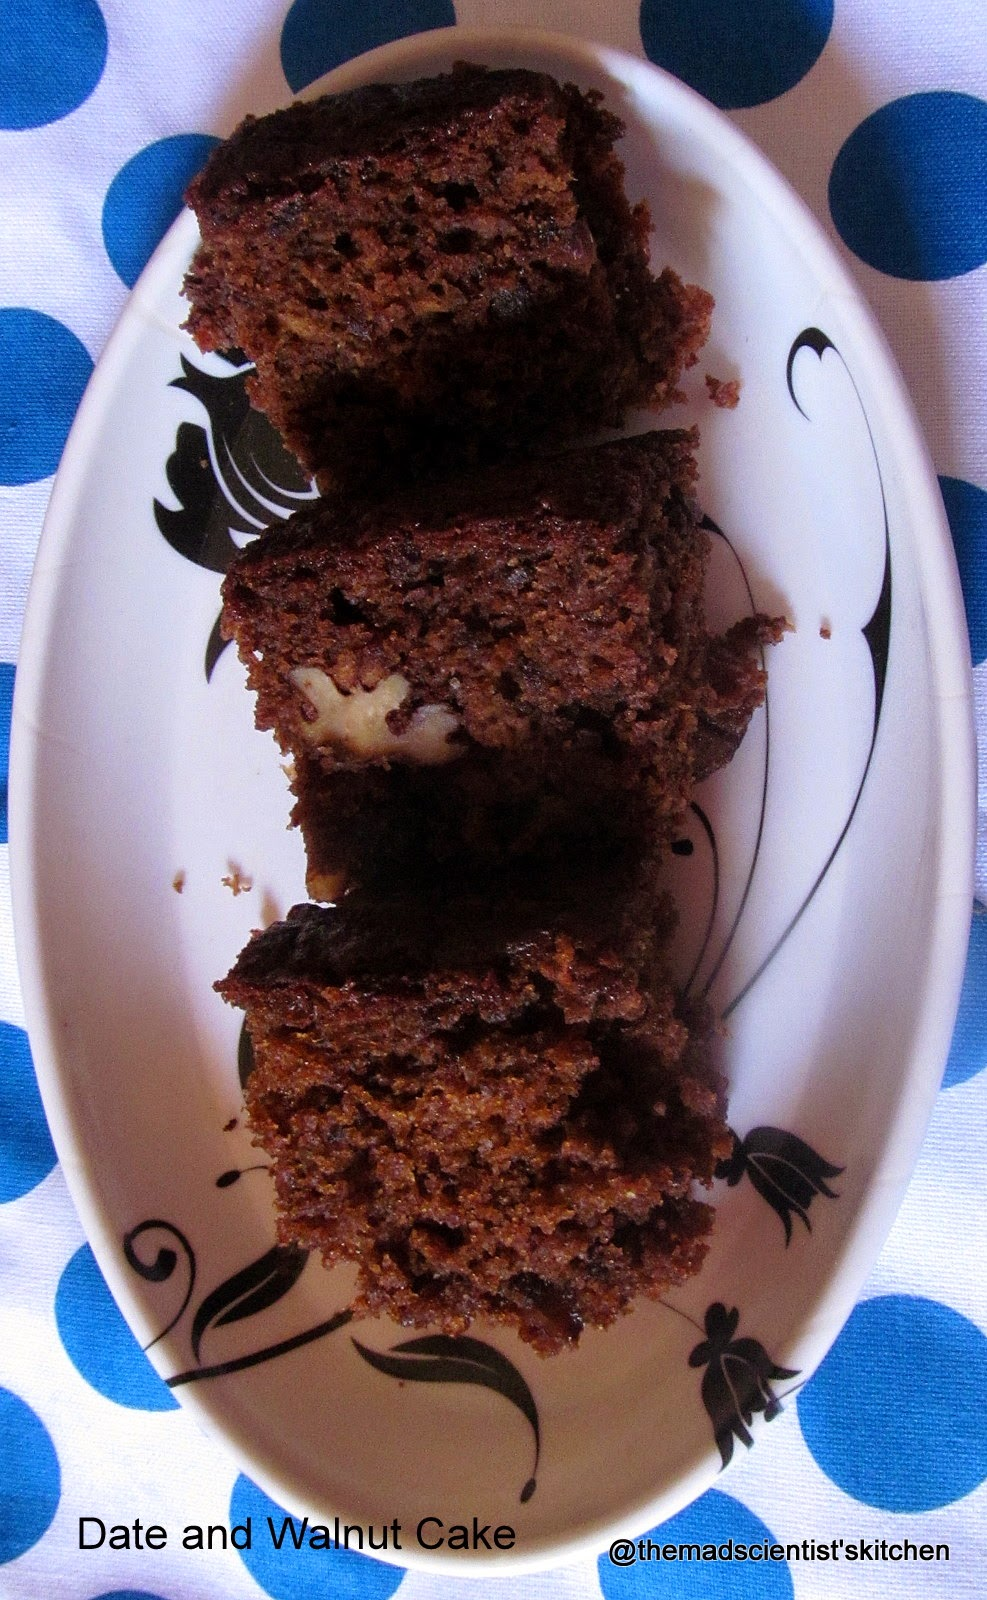 Egg-less Date and Walnut Cake